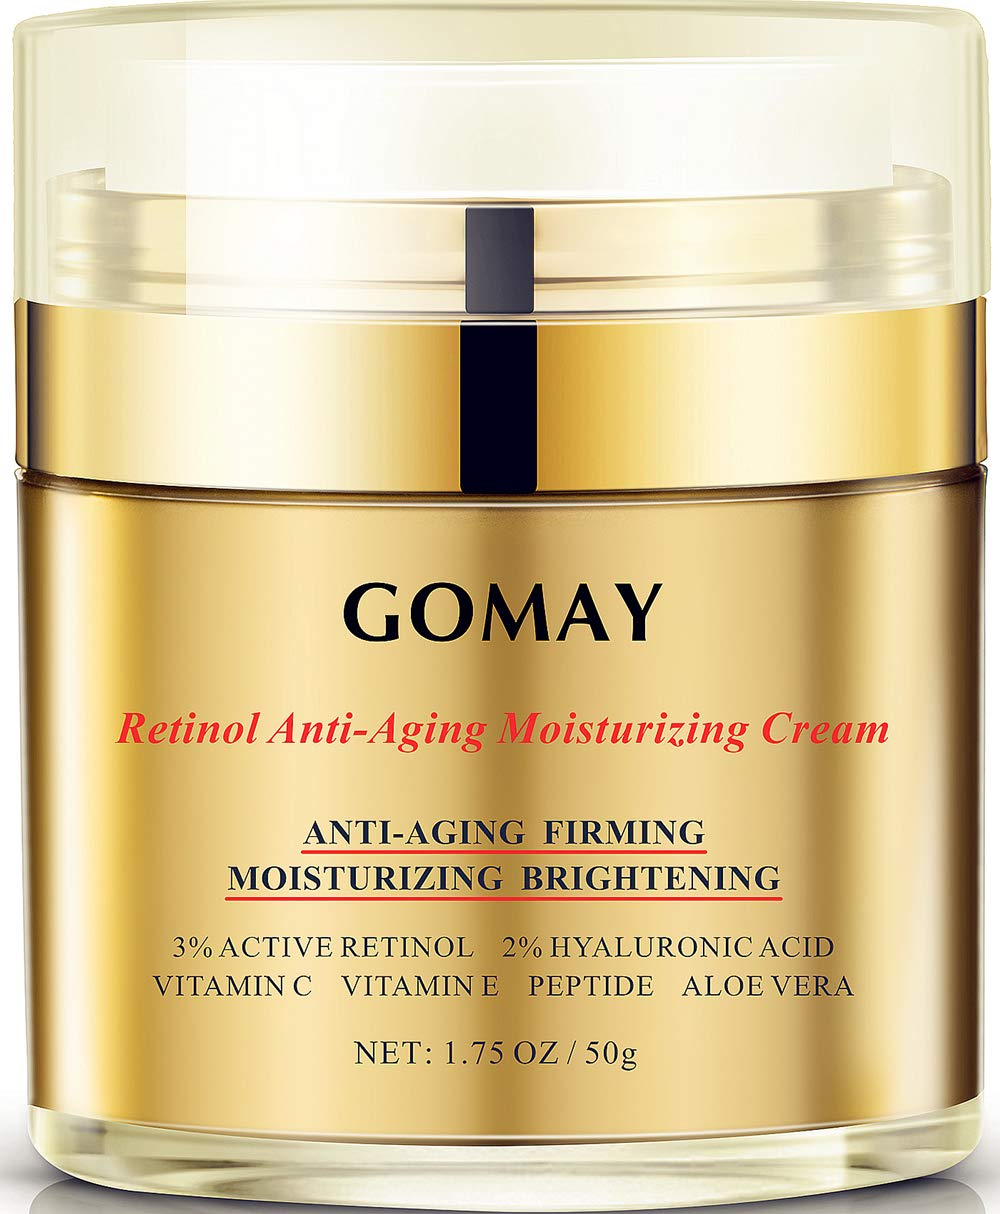 Advanced Face Firming Cream for Anti-aging